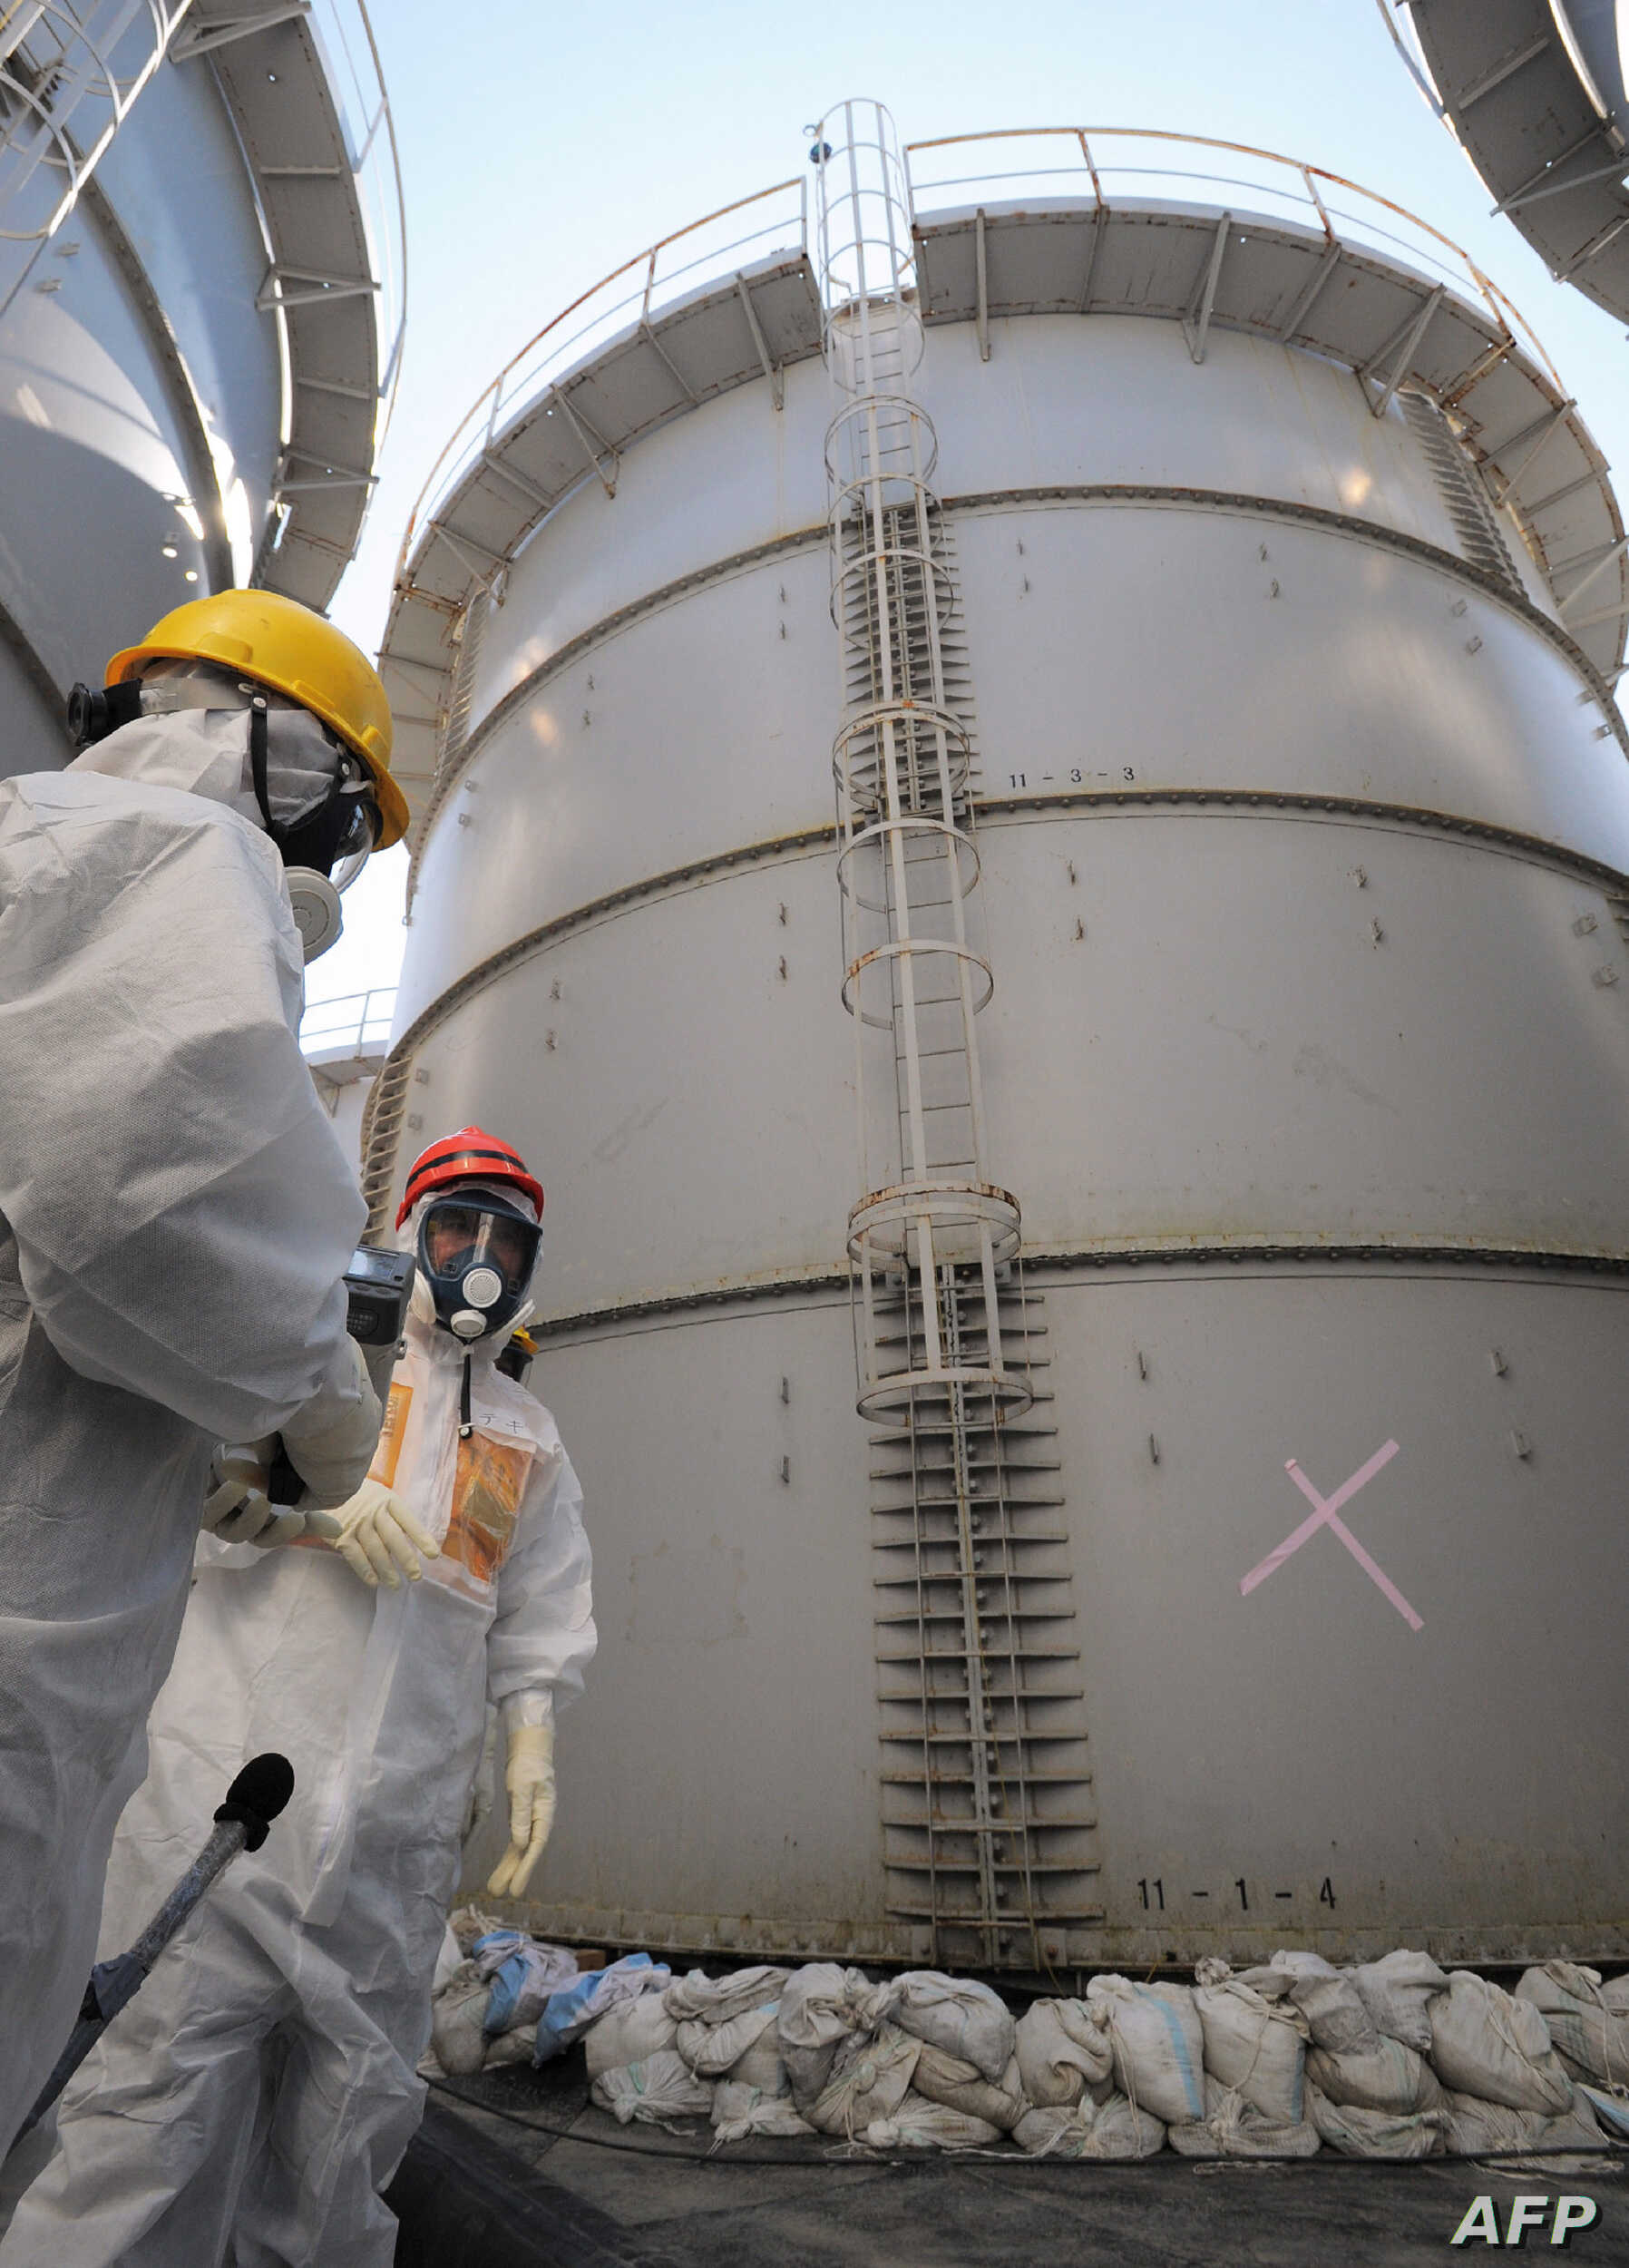 Japanese Economy, Trade and Industry Minister Toshimitsu Motegi (R) in a radiation protection suit inspects a contaminated water tank, found to be have a huge leak of radioactive water, at the Tokyo Electric Power Co (TEPCO) Fukushima Daiichi nuclear